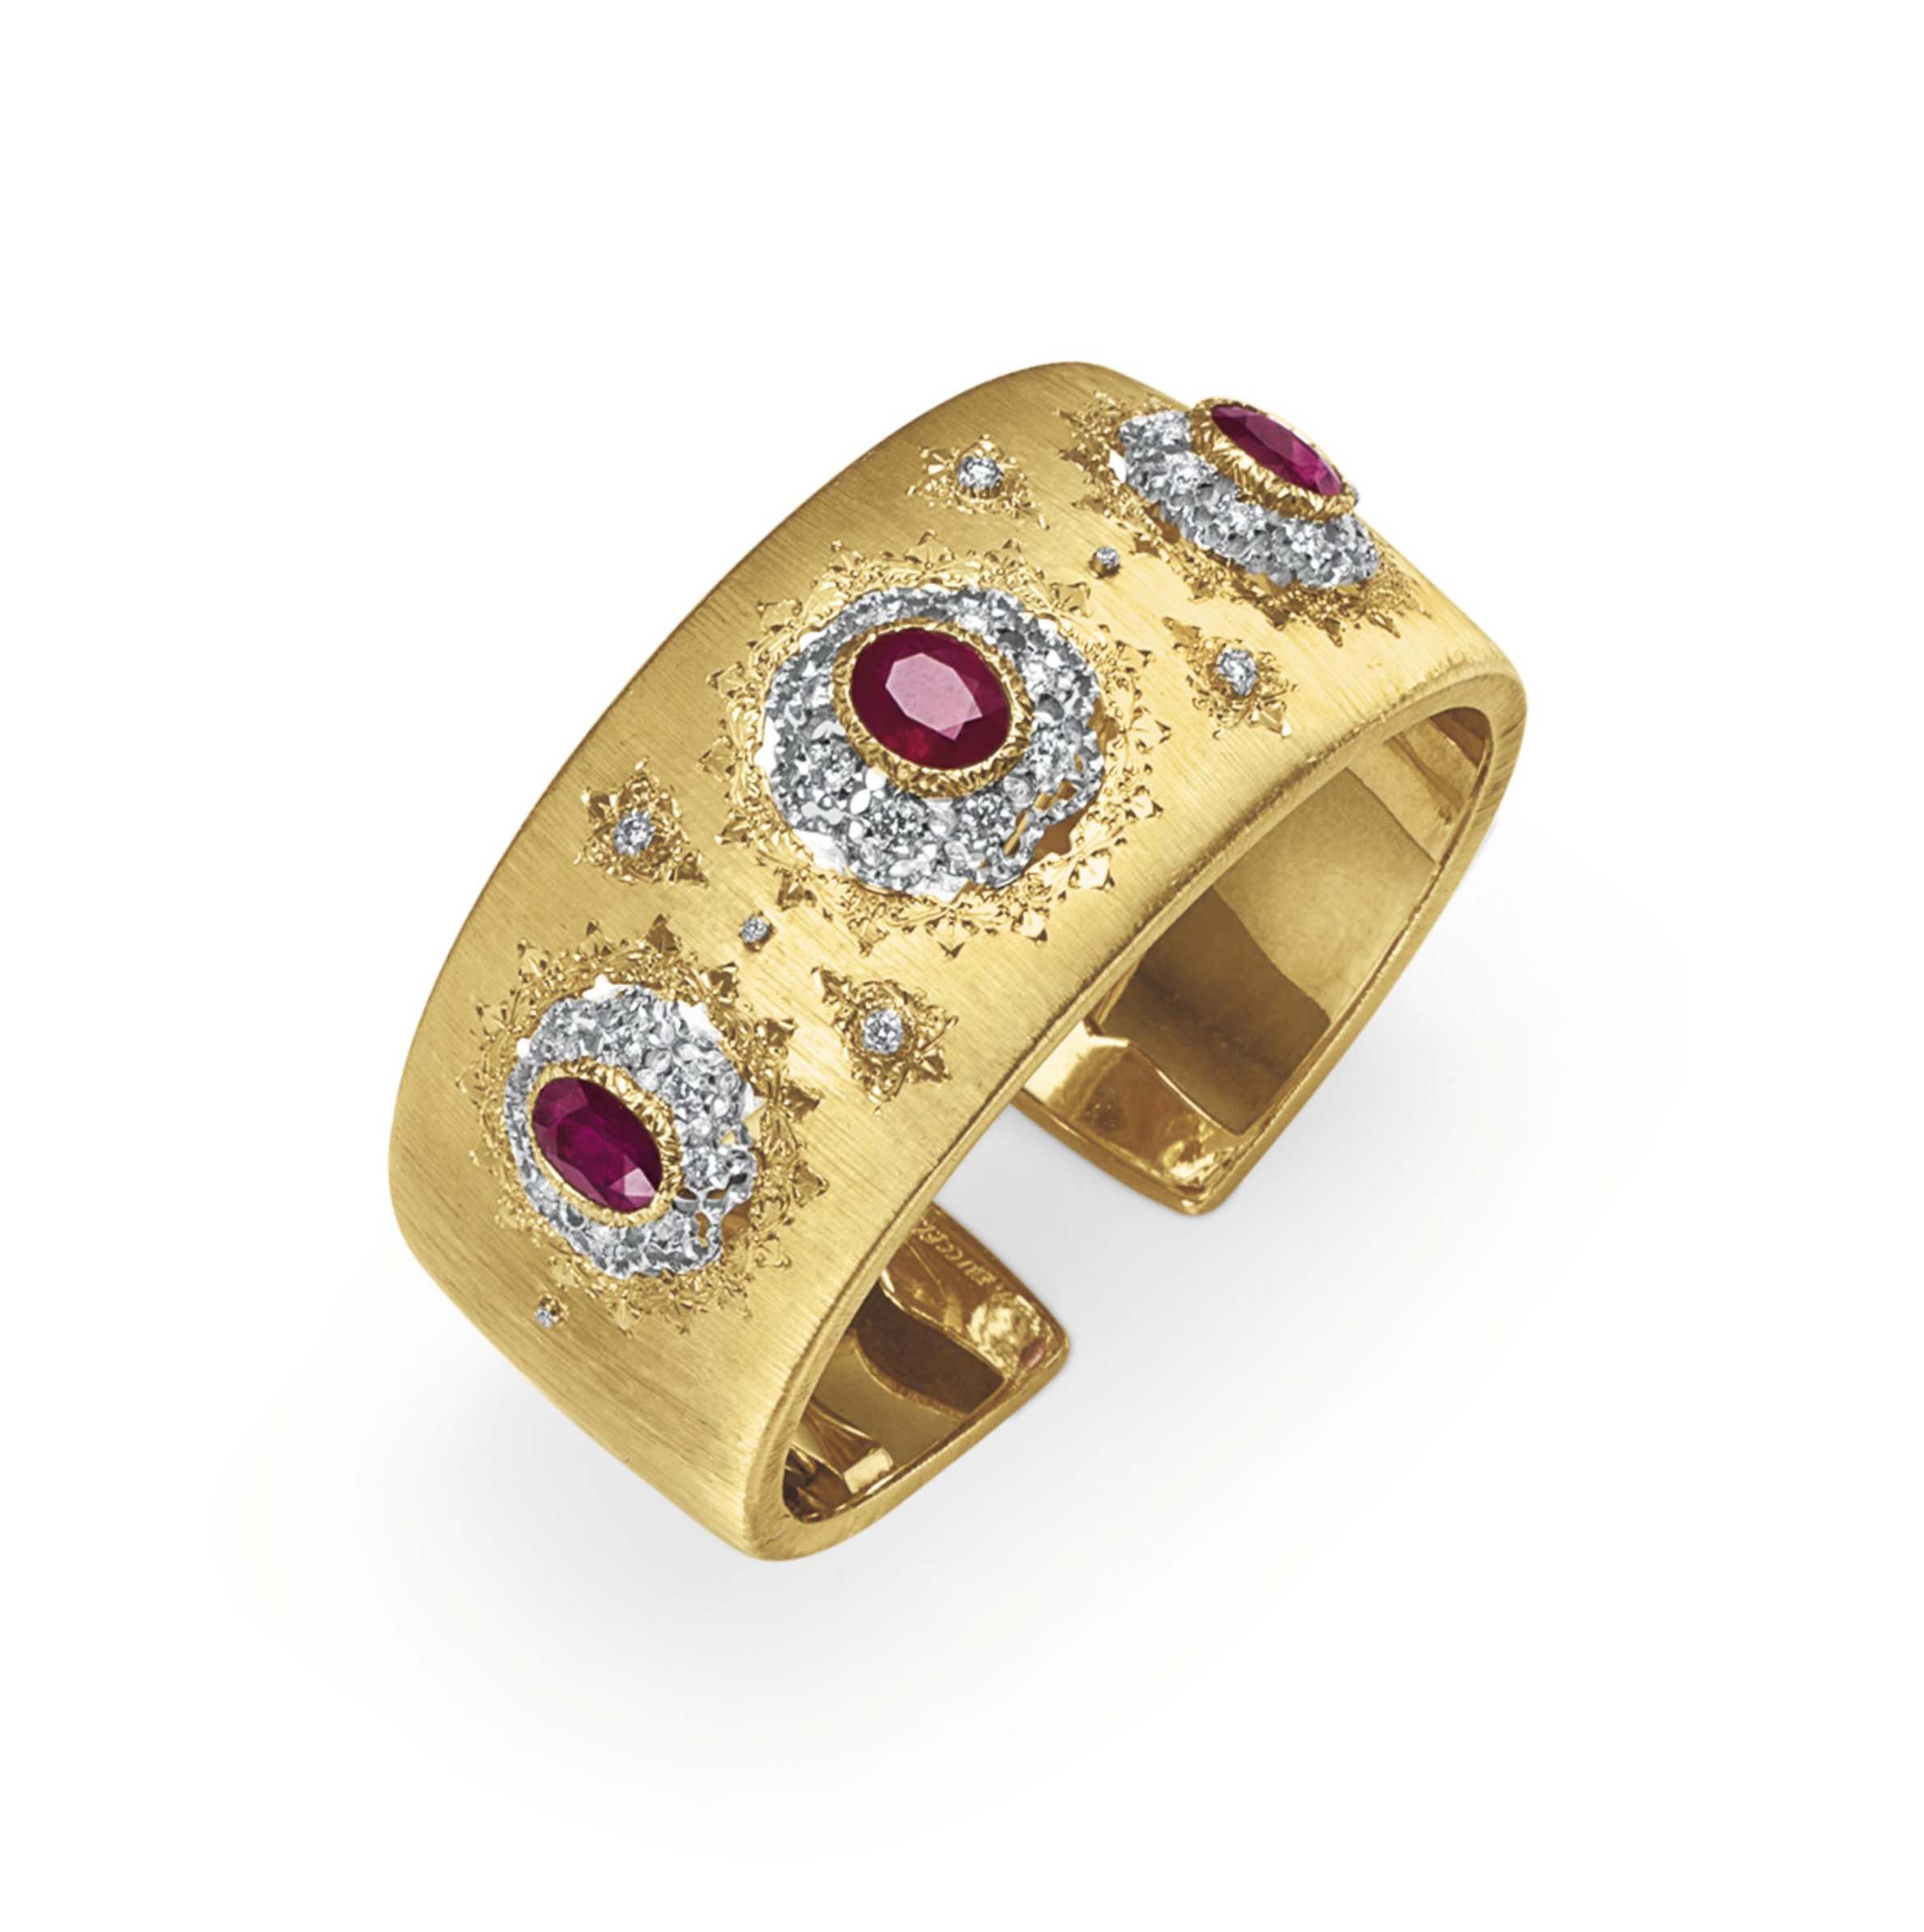 A RUBY, DIAMOND AND GOLD CUFF